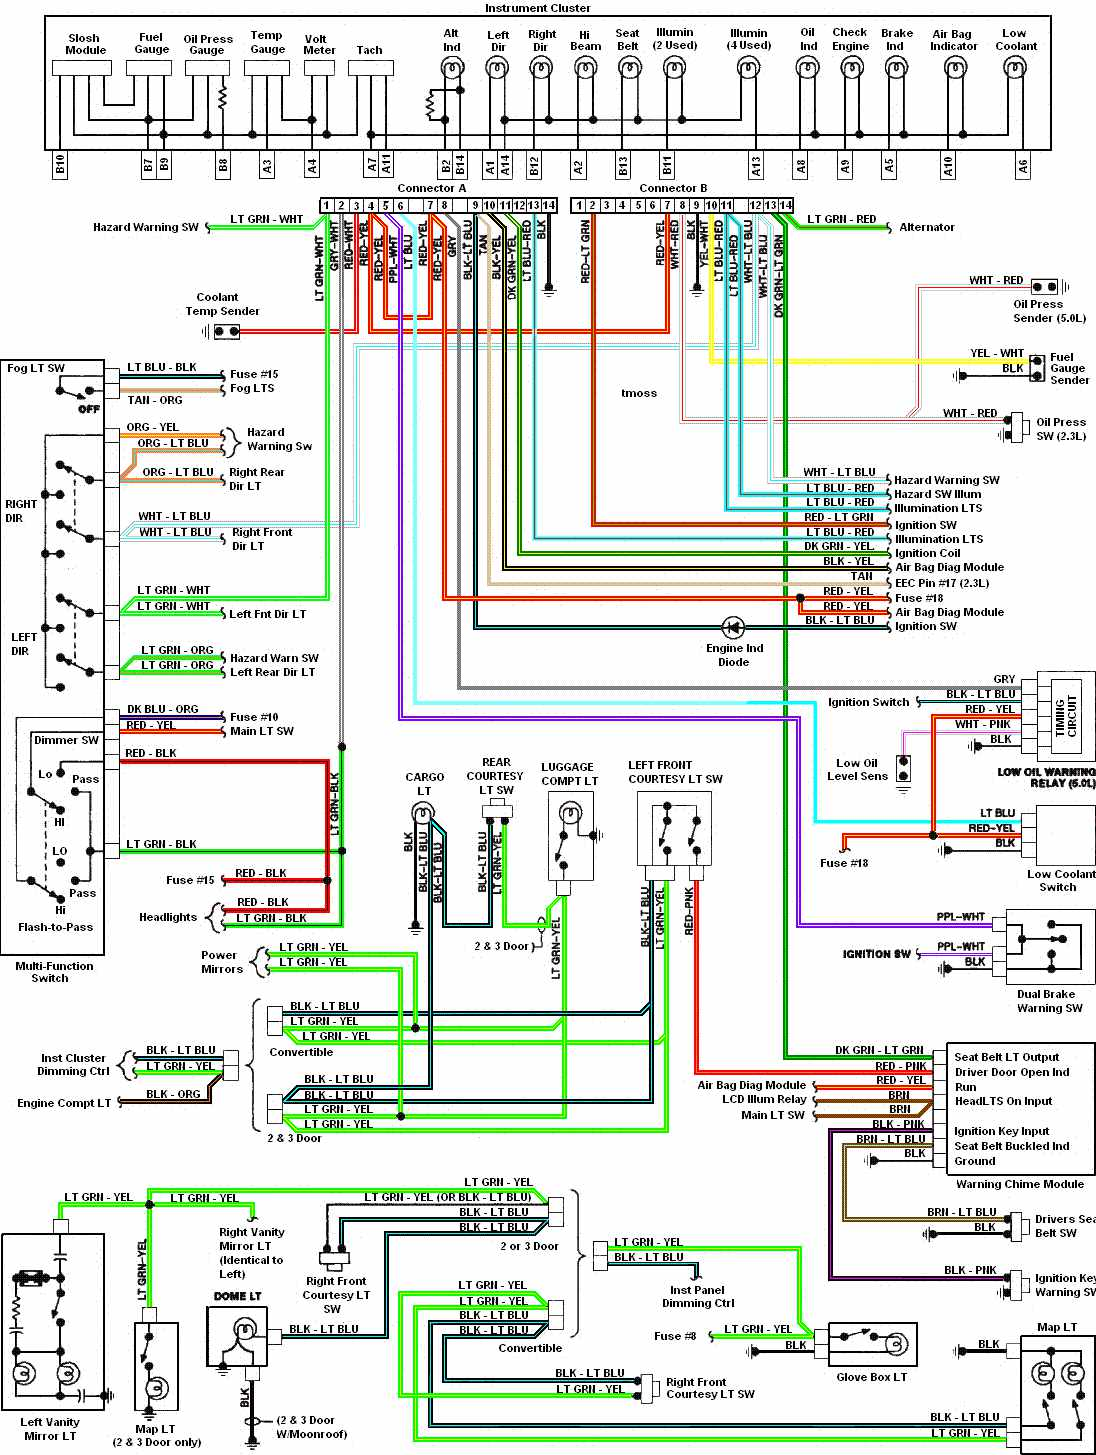 1987 Chevy Radio Wiring Diagram | Wiring Diagram on 1991 ford f350 wiring diagram, ford steering parts diagram, ford power window switch wiring diagram, ford f-250 steering column diagram, ford steering column removal, 78 ford truck wiring diagram, 97 ford ranger steering column diagram, 1997 ford f-150 steering column diagram, 1999 ford ranger steering column diagram, ford truck steering wheel replacement, 1994 ford ranger steering column diagram, ford 390 engine parts diagram, ford steering column mount diagram, ford abs system wiring diagram, 2001 ford ranger steering column diagram, 1996 ford ranger steering column diagram, ford steering gearbox diagram, ford f150 steering column repair, ford transfer case wiring diagram, 1998 ford ranger steering column diagram,